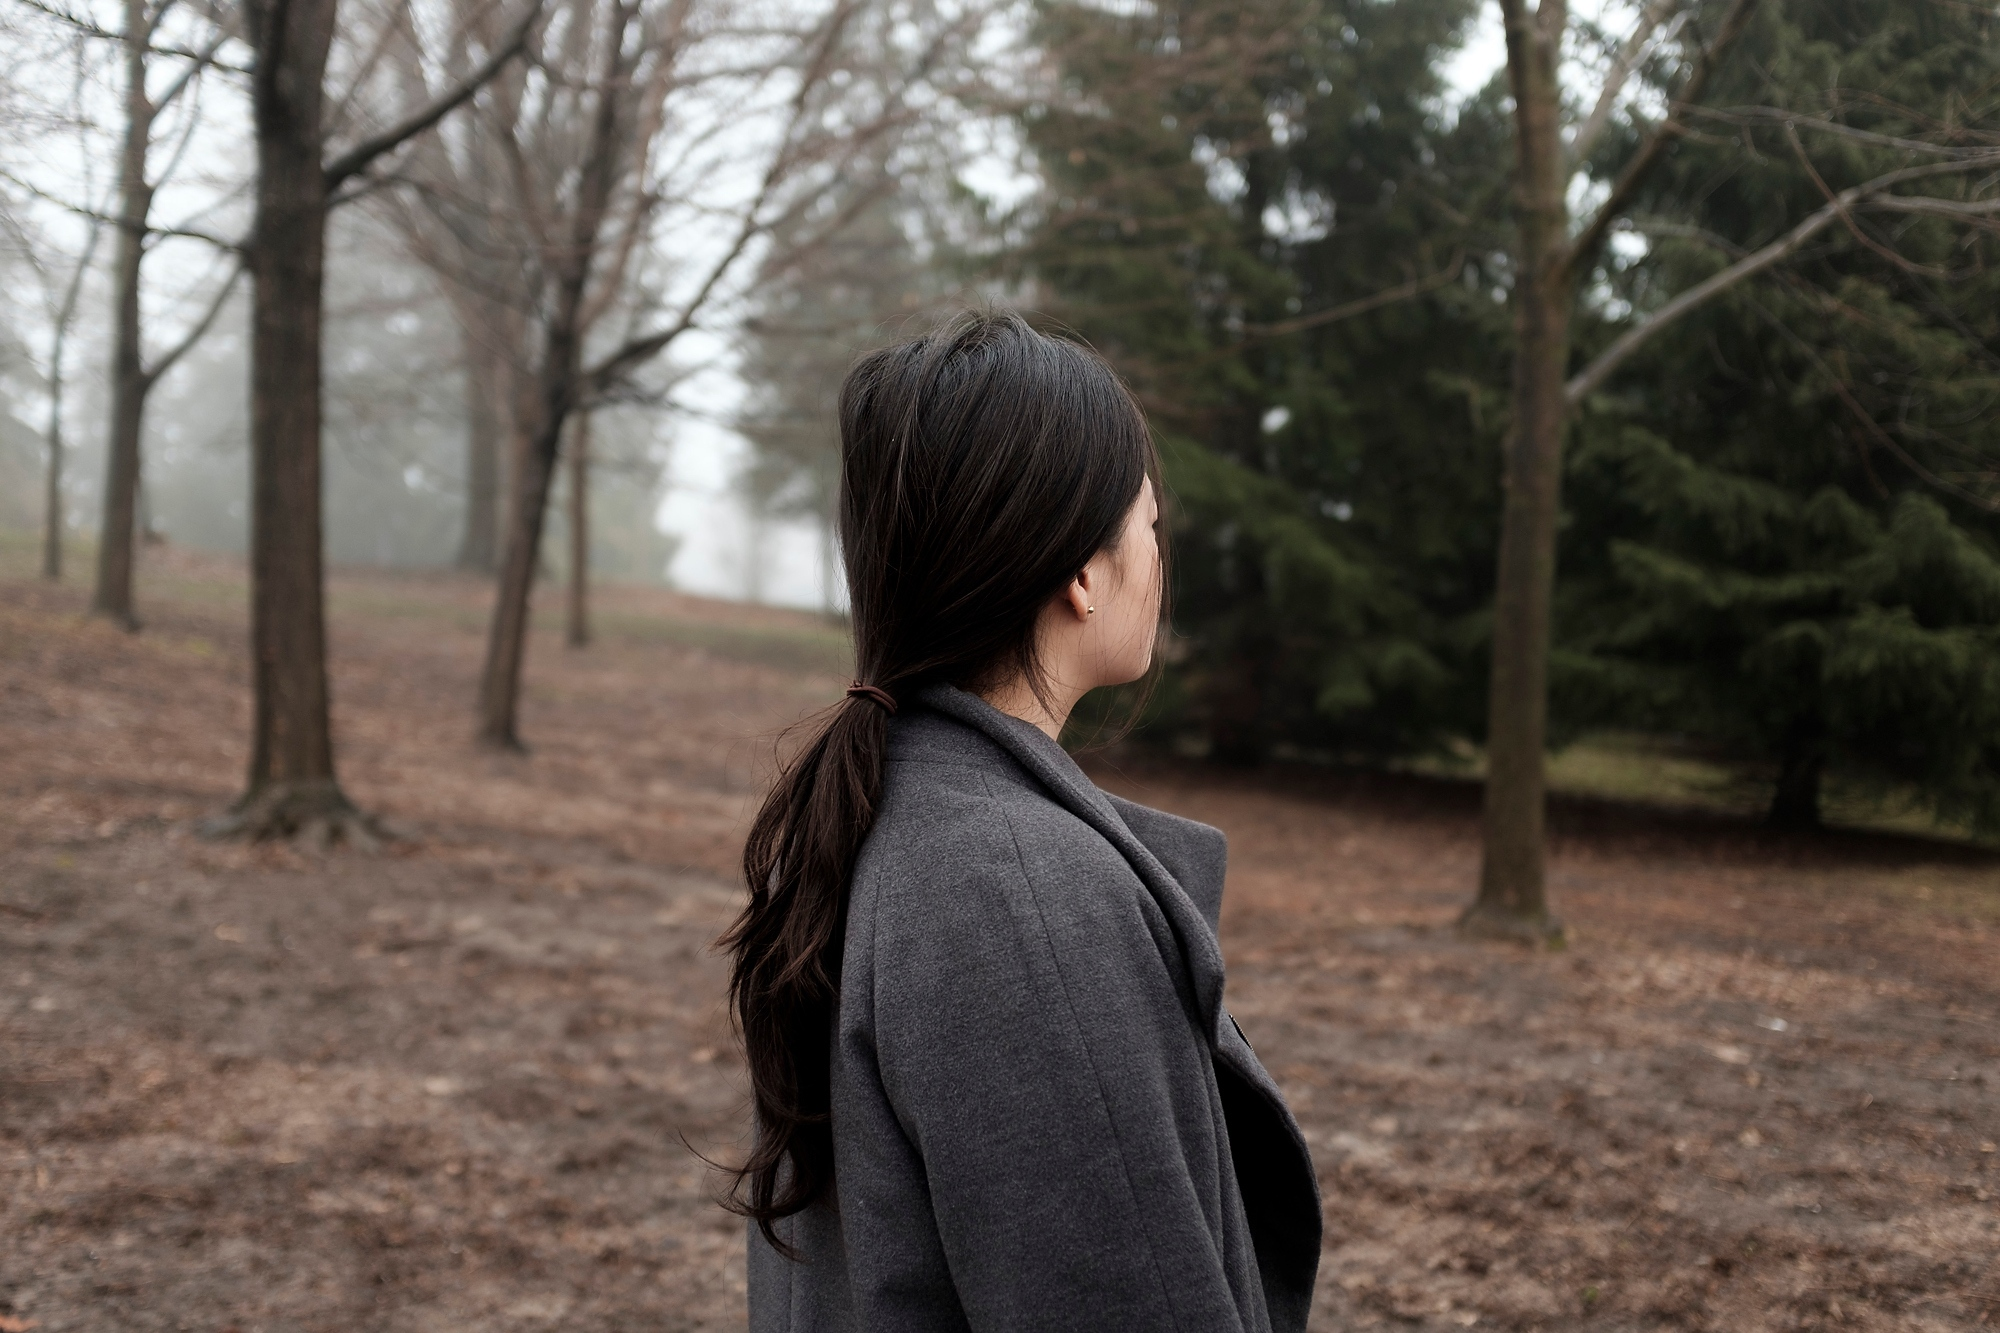 "E.L. stands in a local park in Waterloo, Ontario in April 2017. E.L believes she has borderline personality disorder. She only recently started to see a counsellor at the university. ""I felt lonely growing up because of mood instability. So I resorted to self-harm. It felt like I could drop everything and I could focus on one feeling which was physical, instead of the inner emotions which were harder to deal with and control. No one ever just does things. You can't analyze surface level things. There's probably something deeper going on with someone."" April 2017"